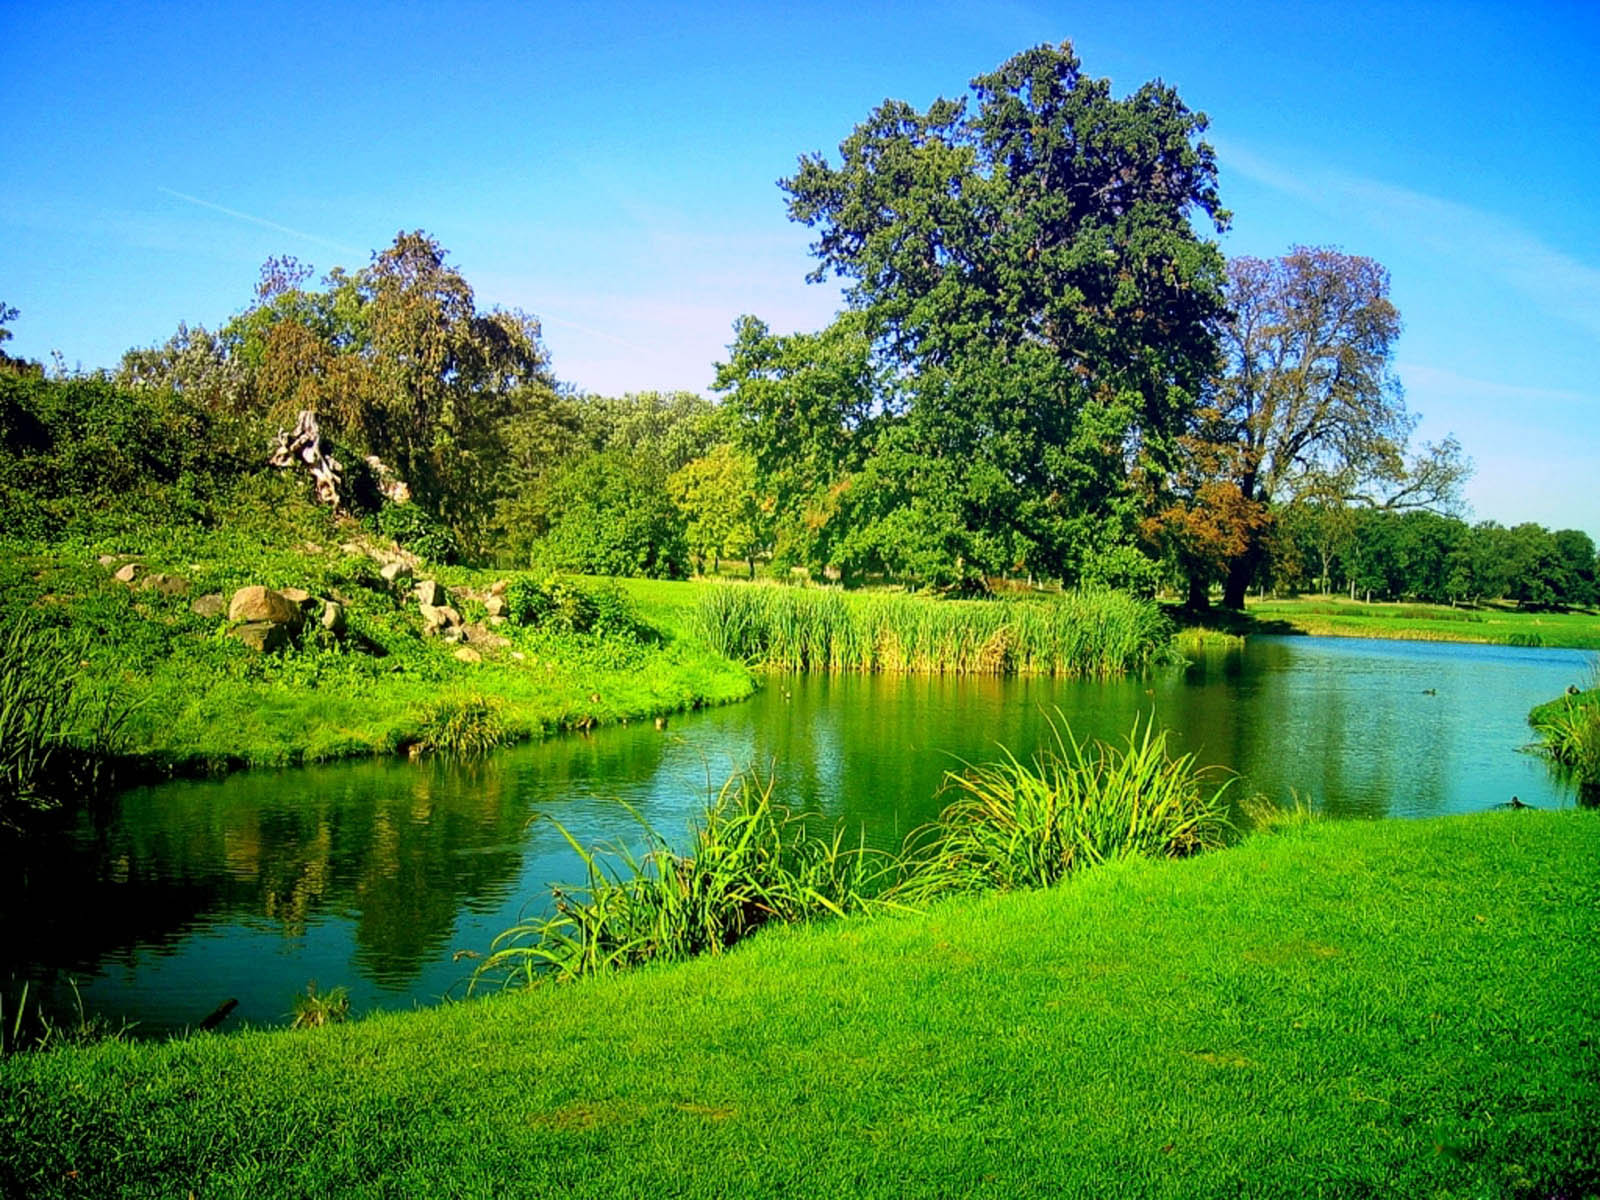 Tag Green Nature Wallpapers BackgroundsPhotos Images and Pictures 1600x1200